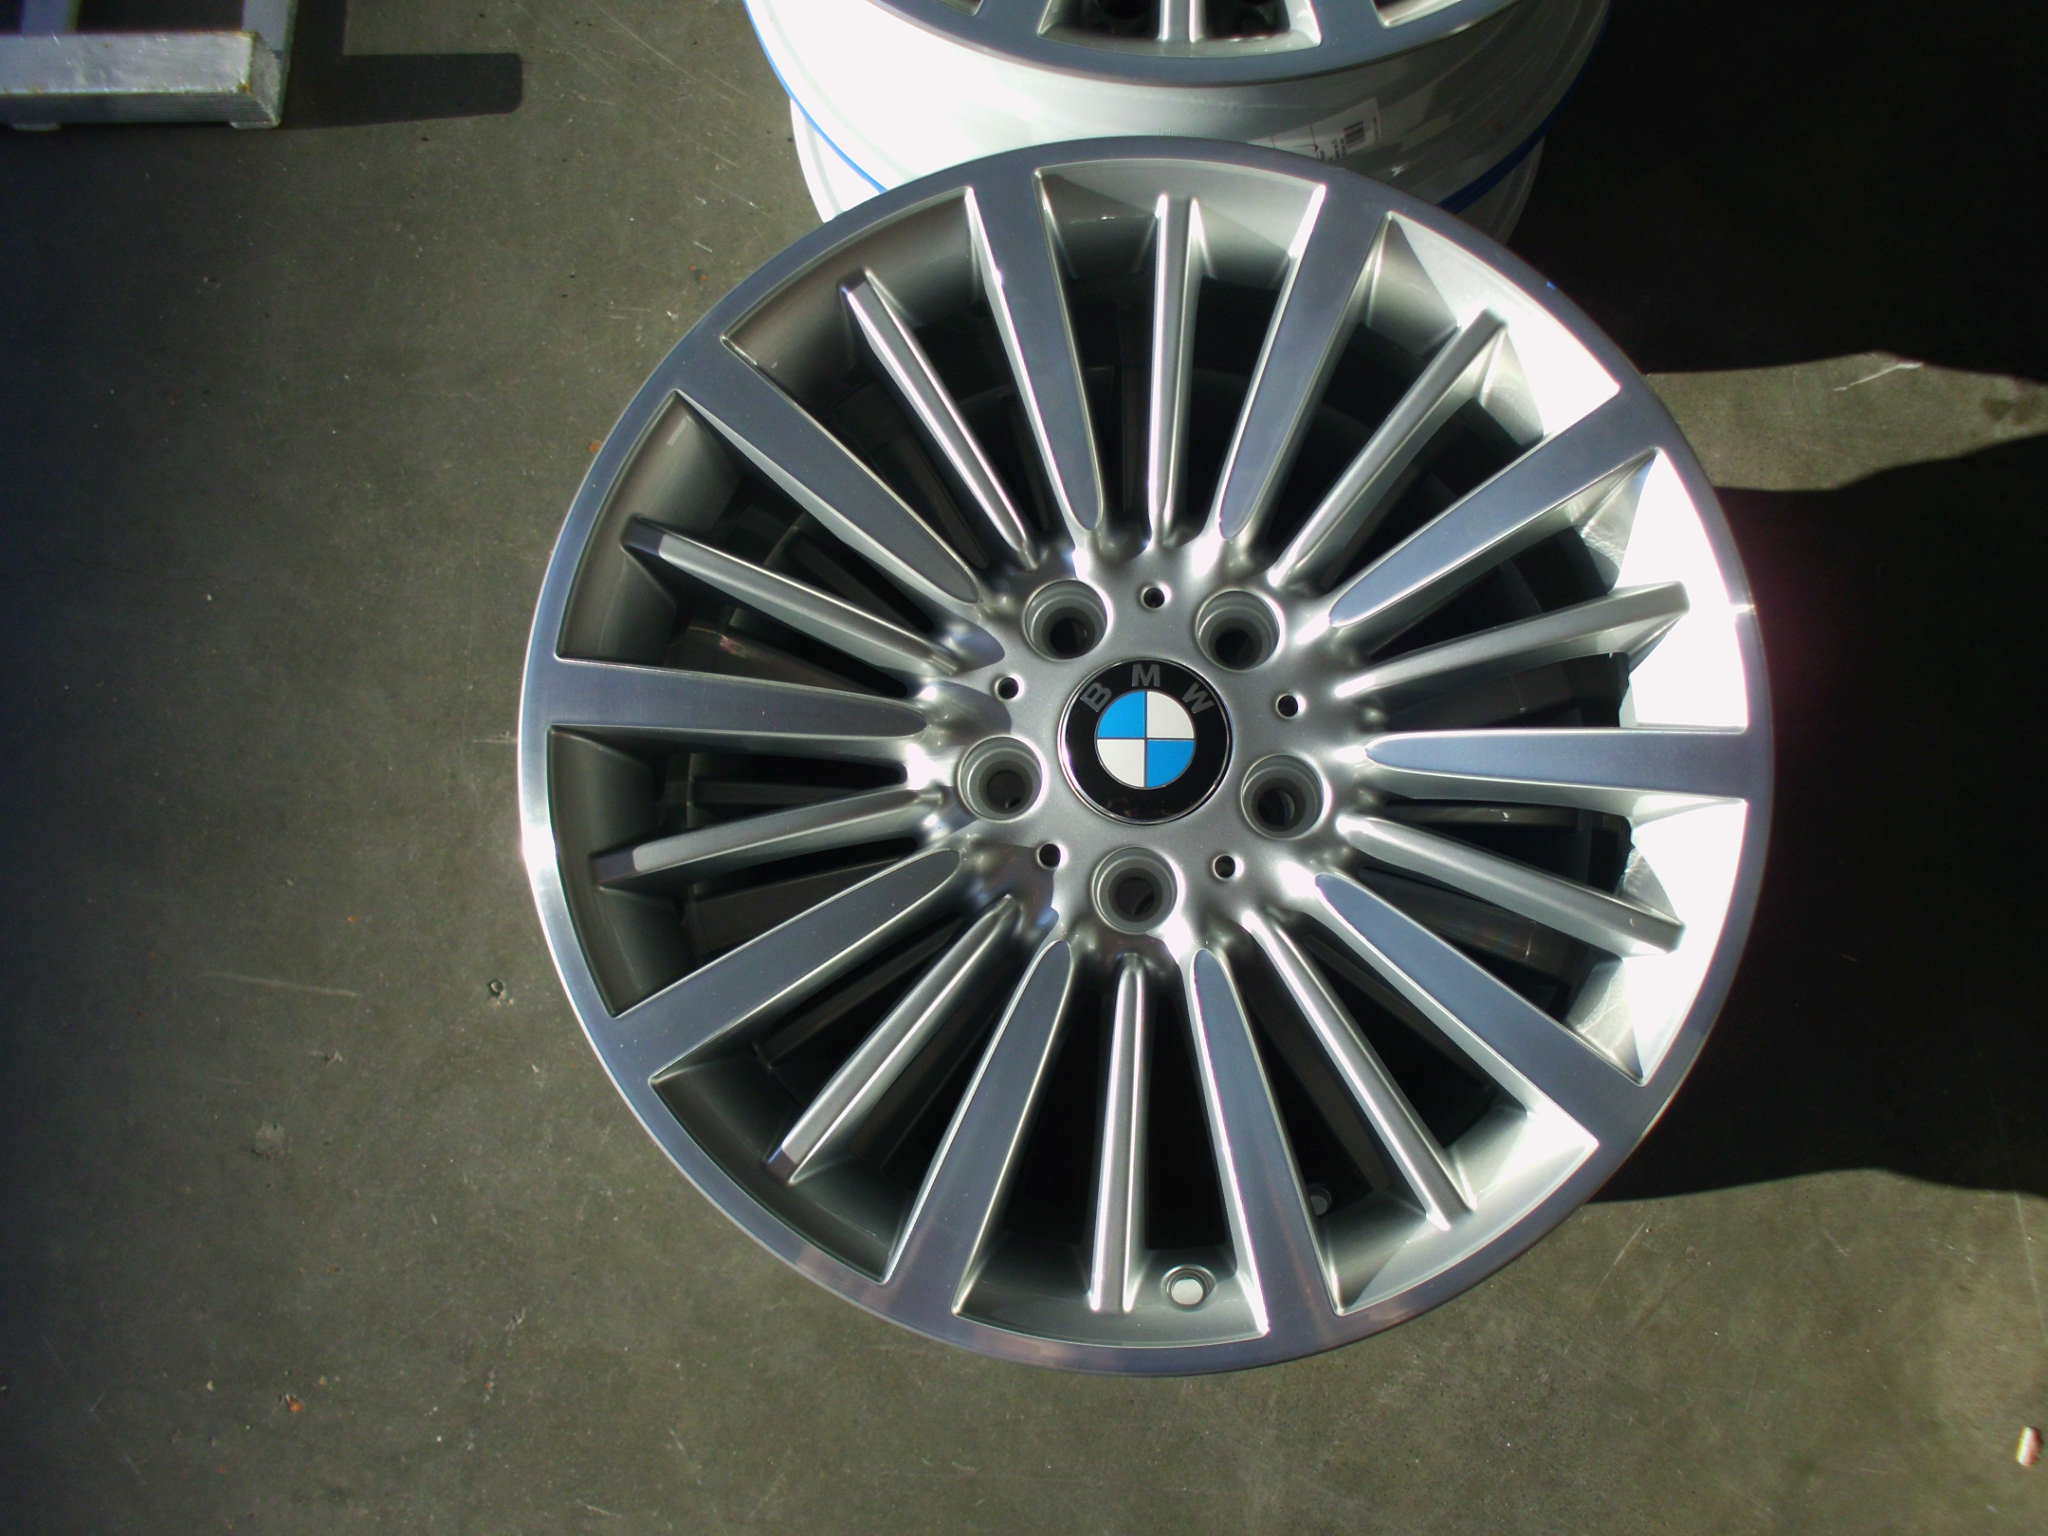 "USED 18"" GENUINE BMW STYLE 416 MULTI SPOKE ALLOY WHEELS,FULLY REFURBED IN SILVER WITH POLISHED FACE"